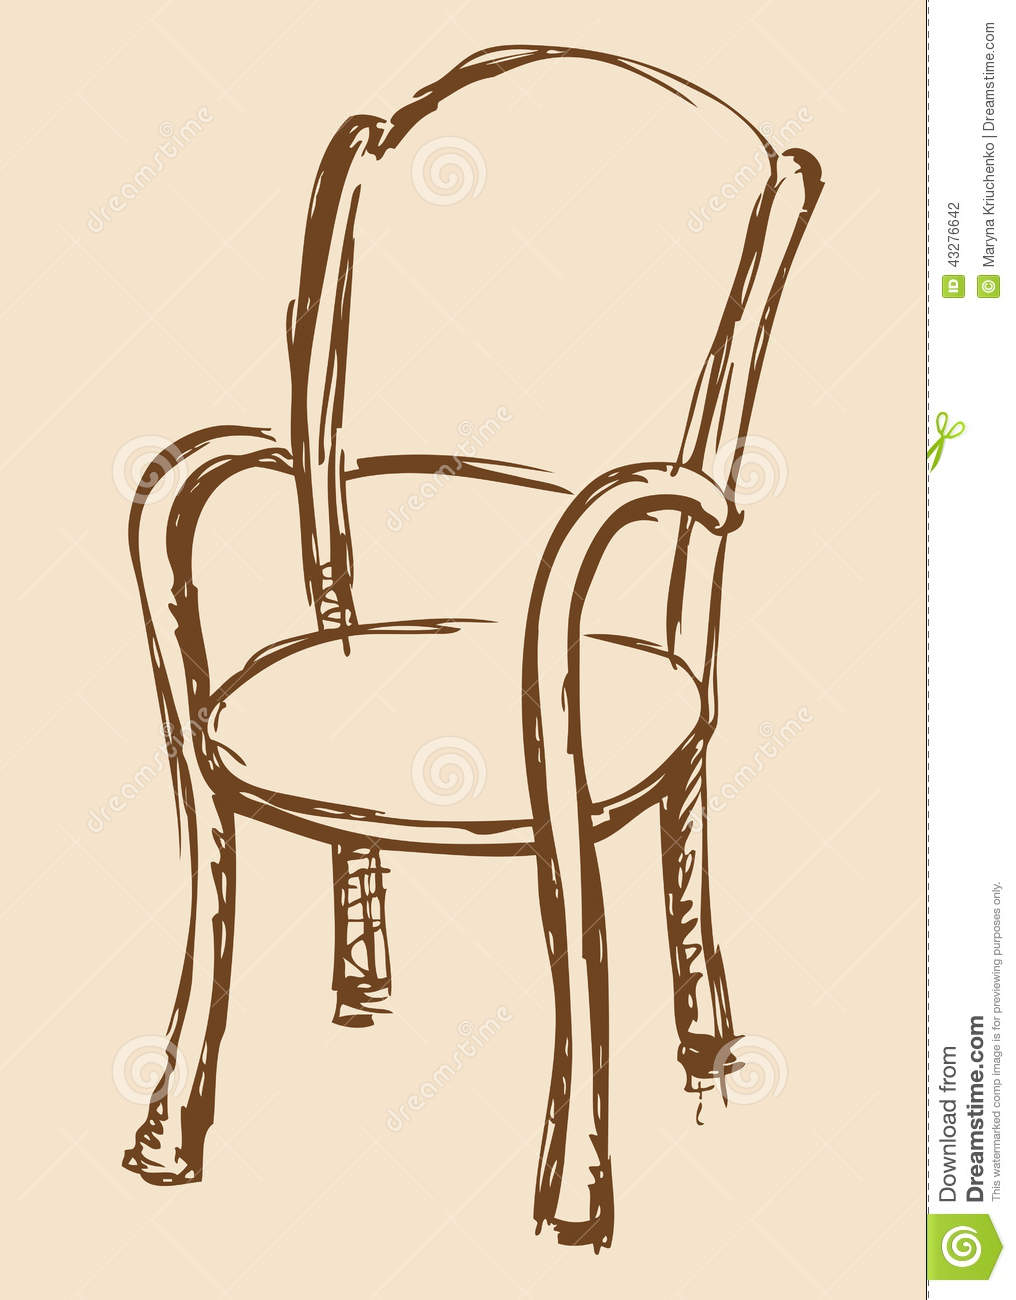 Vector Drawing Wooden Chair With Armrests Stock Vector Image 43276642